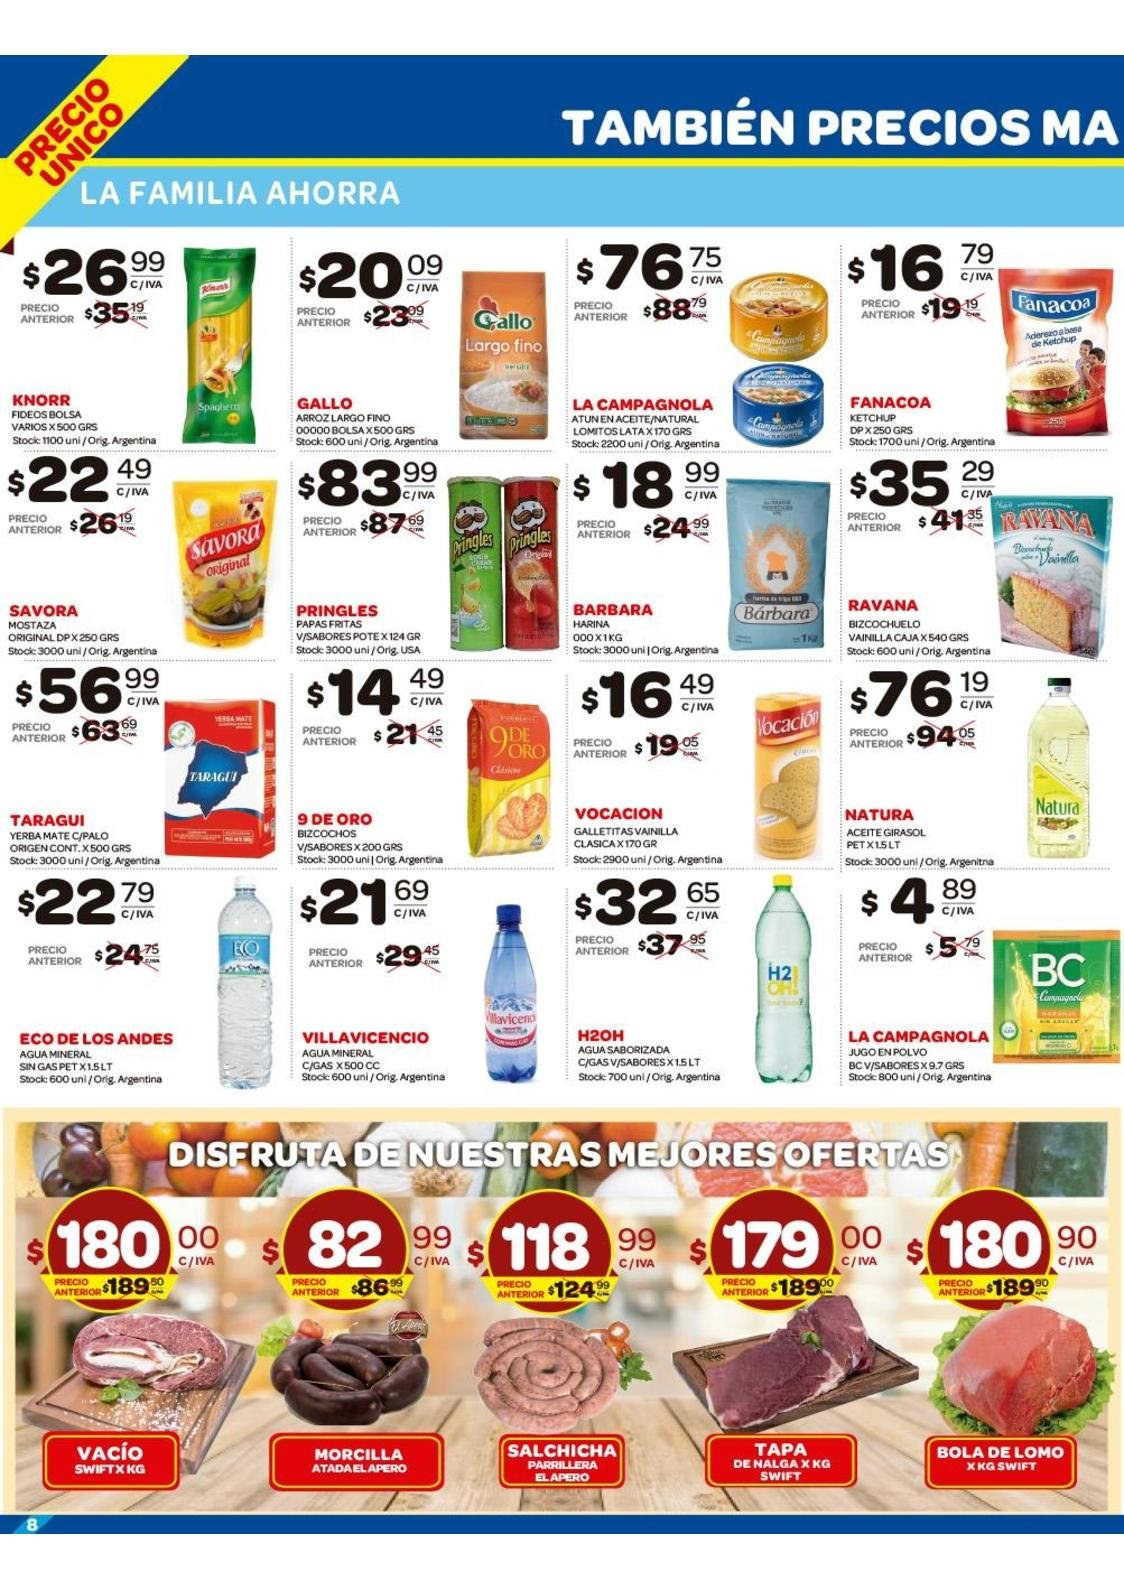 Folleto actual Carrefour - 14.1.2019 - 20.1.2019 - Ventas - aceite 441284117fc6